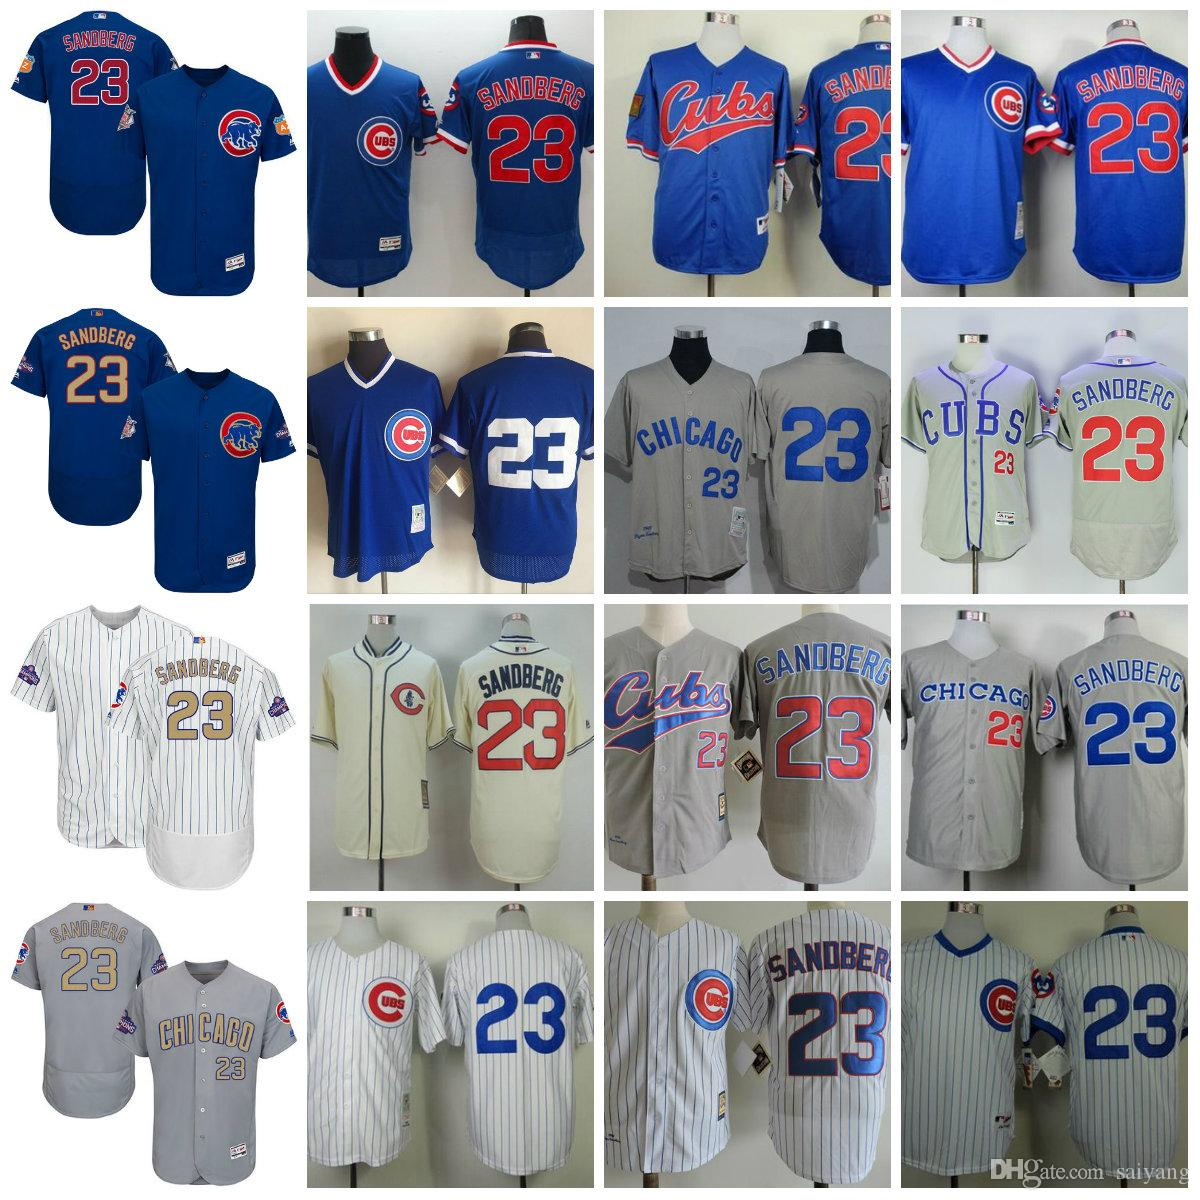 2018 mens throwback 23 ryne sandberg jersey 1909 1929 1984 1988 1990 1994 turn back chicago